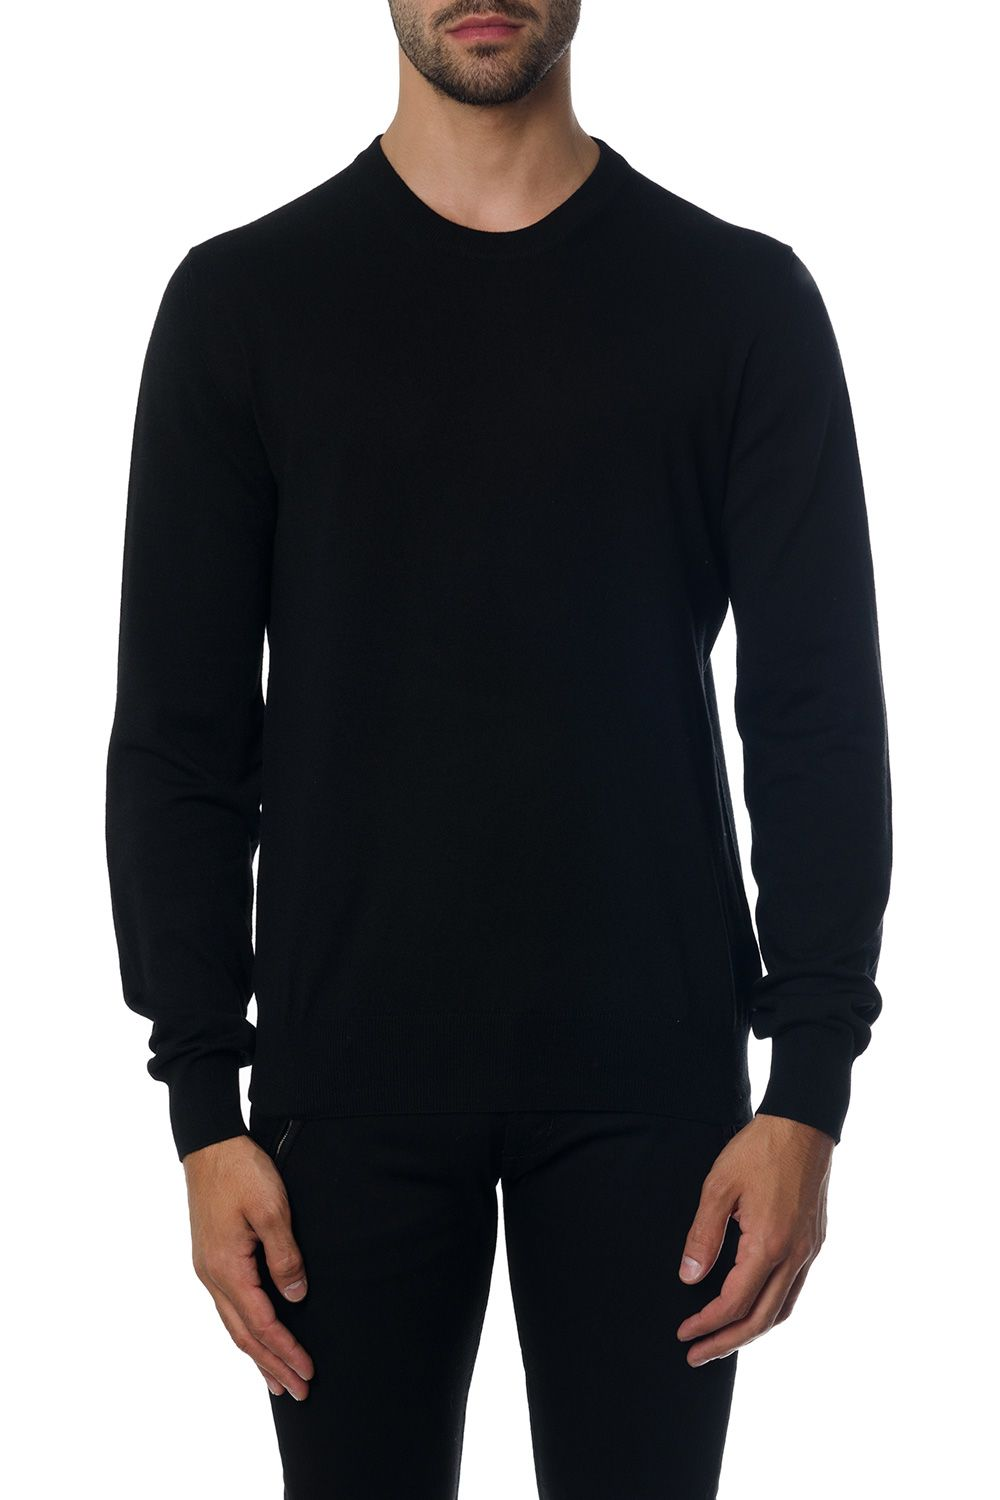 Maison Margiela Black Mixed Fabric Knitwear With Suede Patches Details